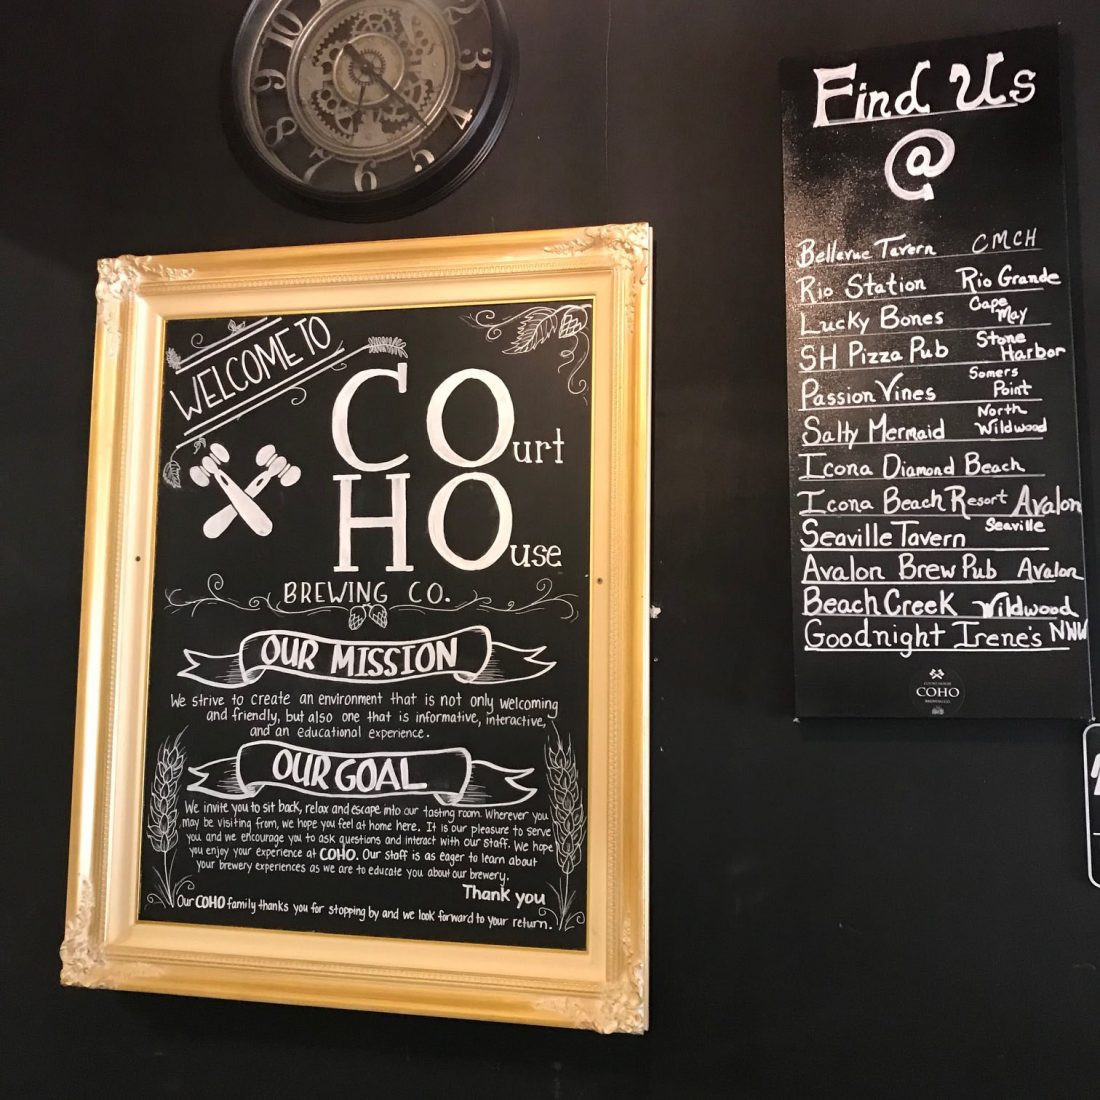 446. Coho Brewing, Cape May Court House NJ, 2019